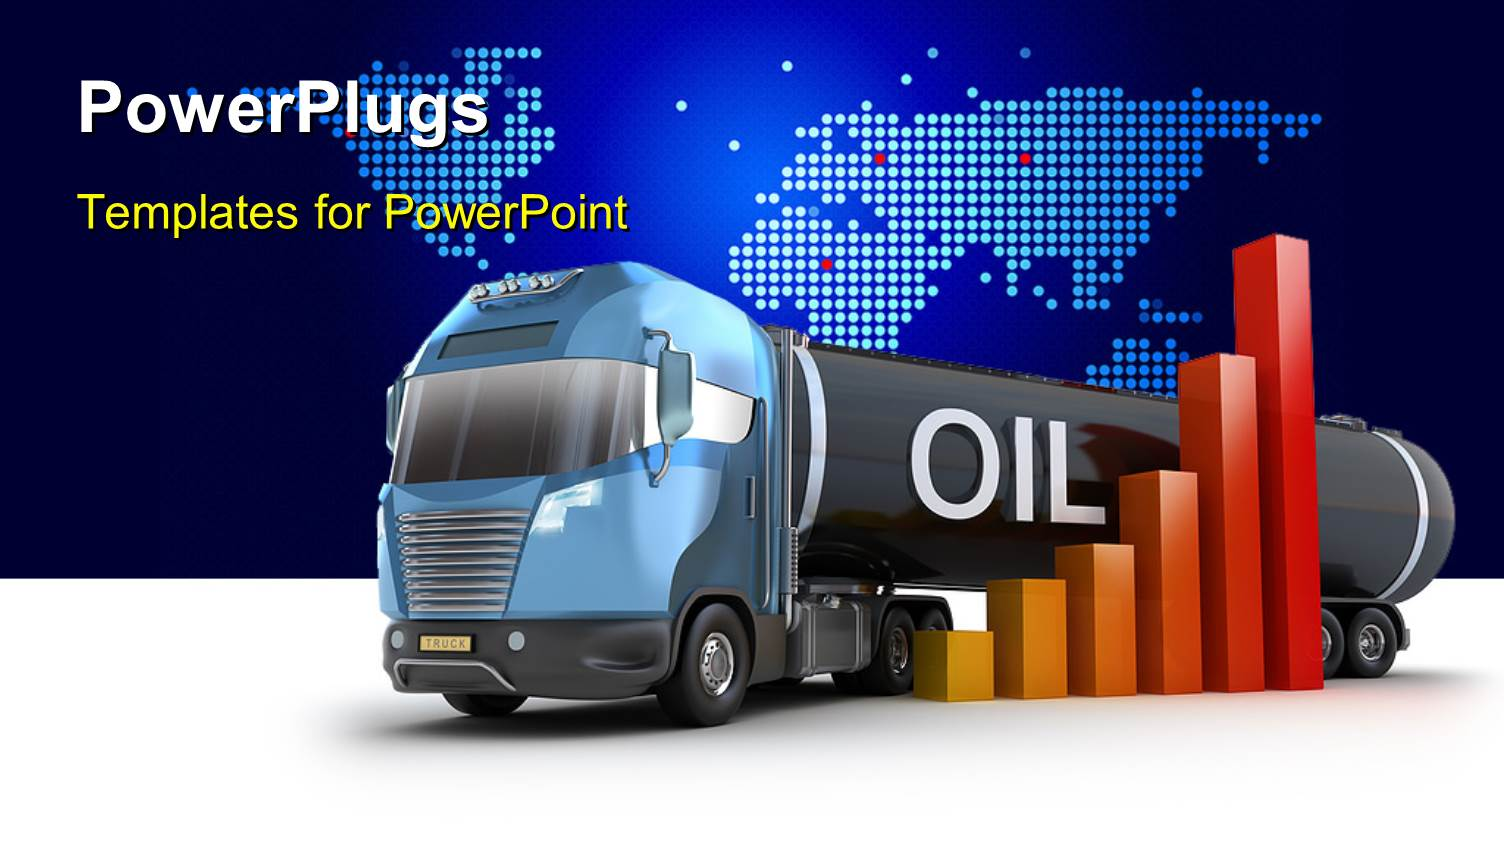 Powerpoint template oil delivery truck with bar chart over world powerpoint template displaying oil delivery truck with bar chart over world map in background toneelgroepblik Image collections